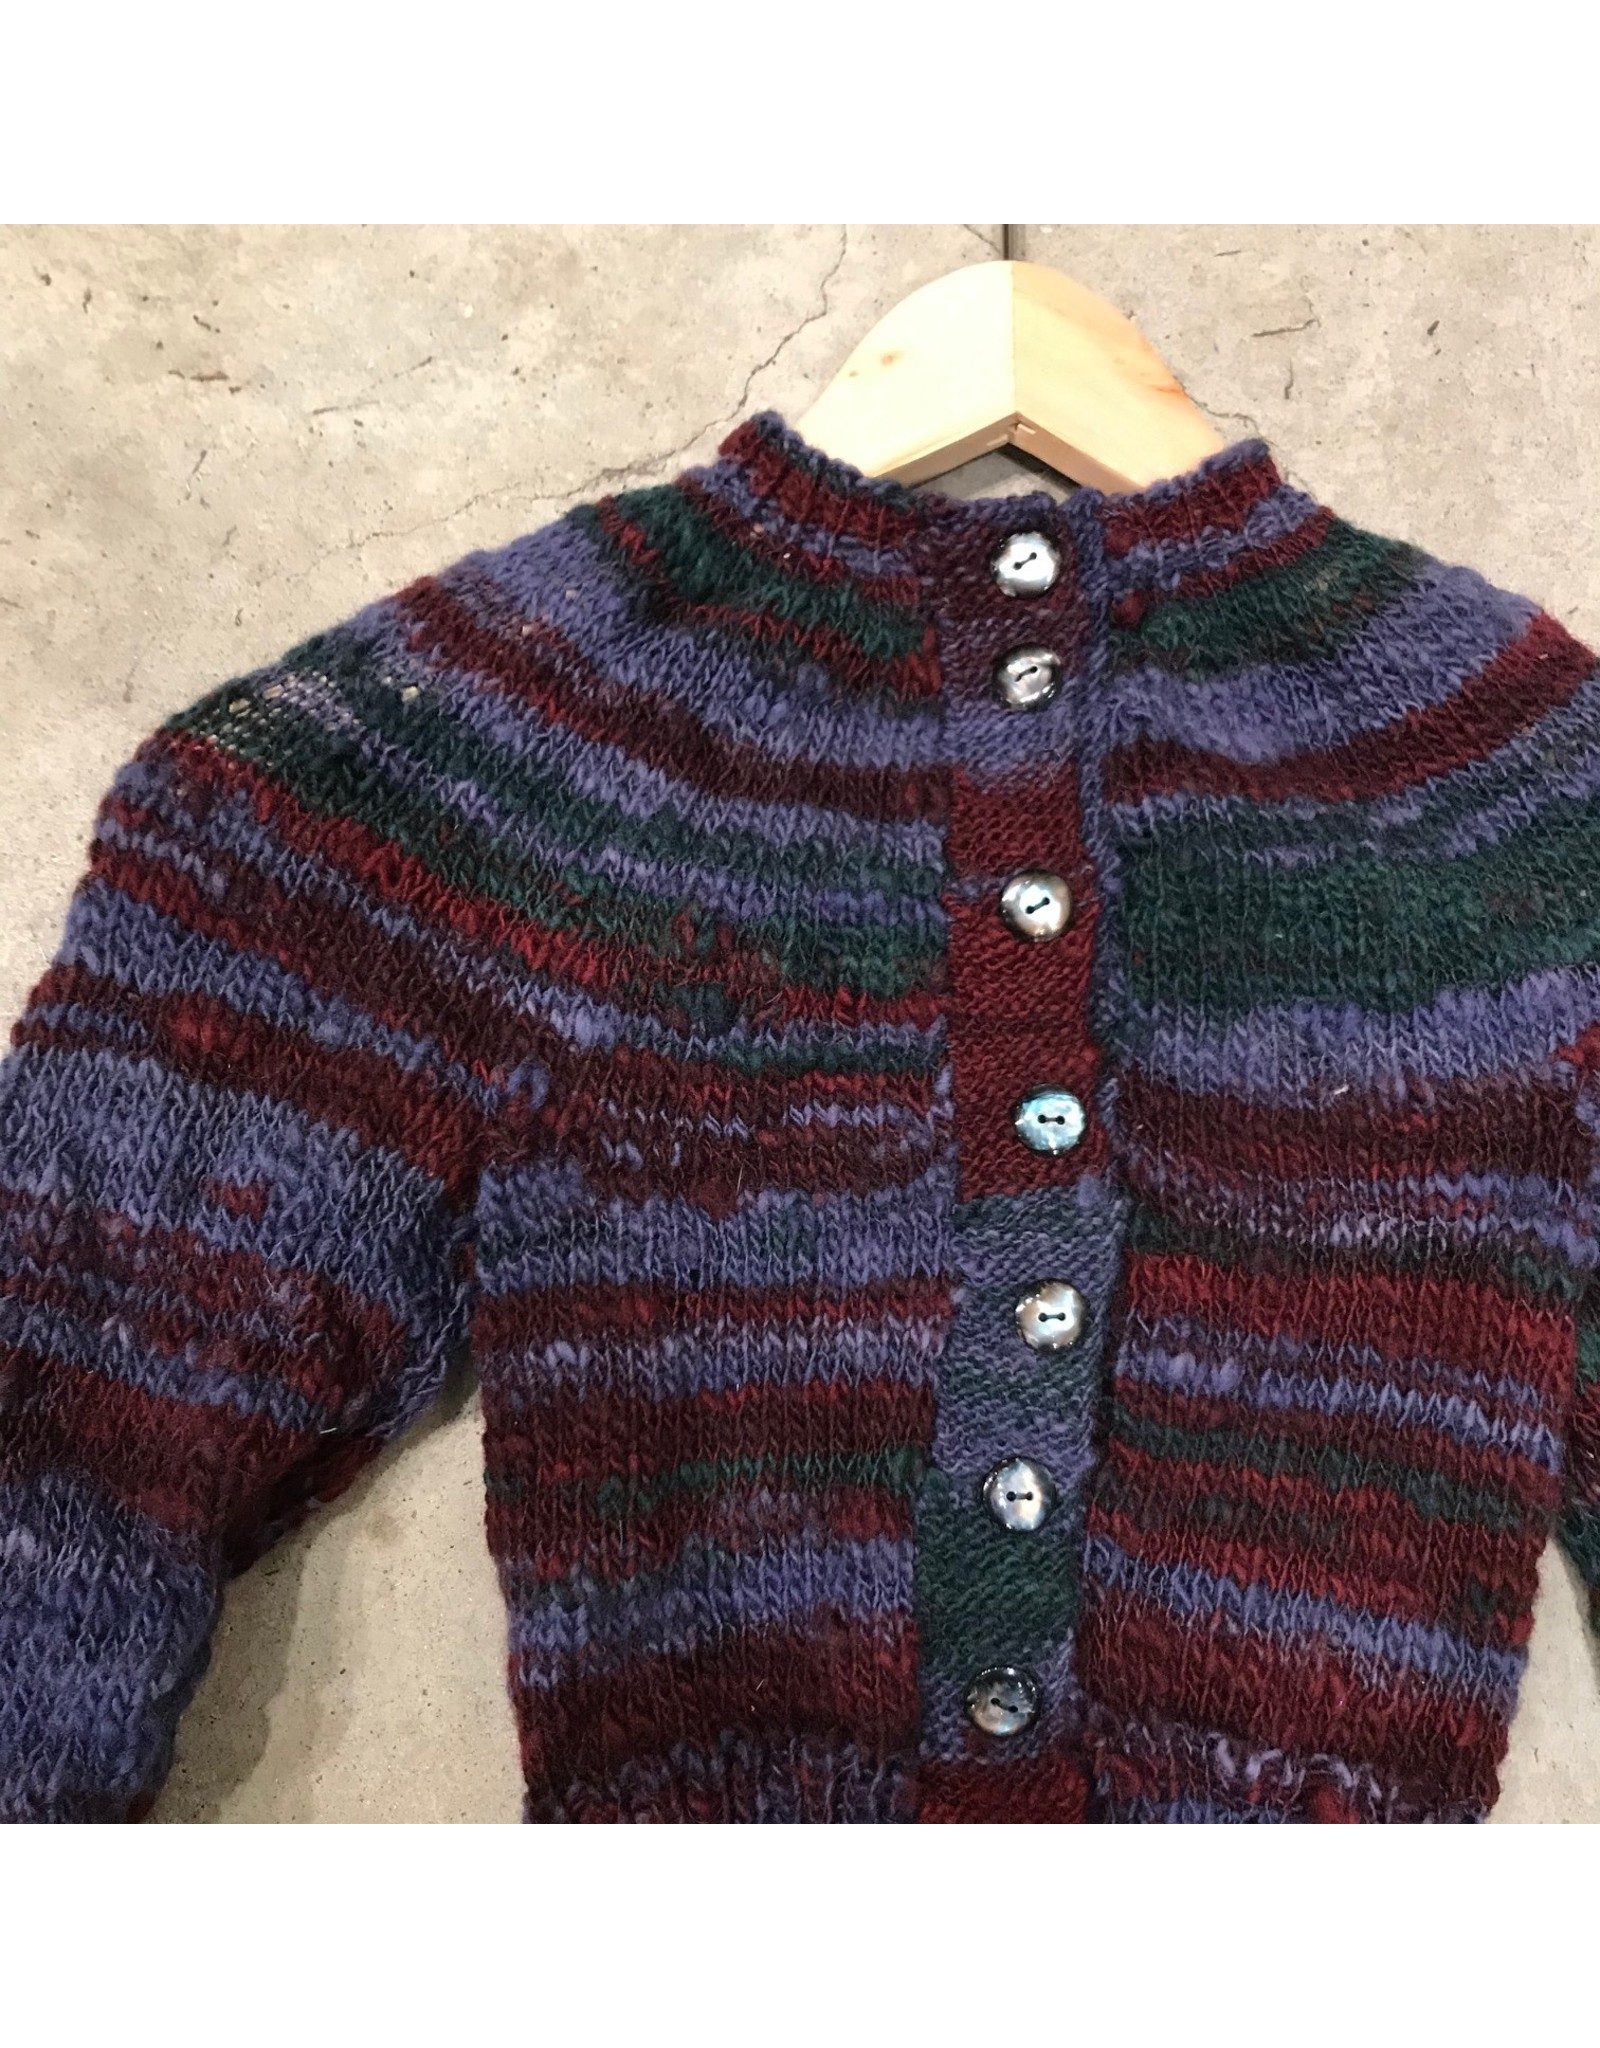 Devil May Wear Hand Dyed, Spun and Knit Cardigan, Small 100% Merino Wool